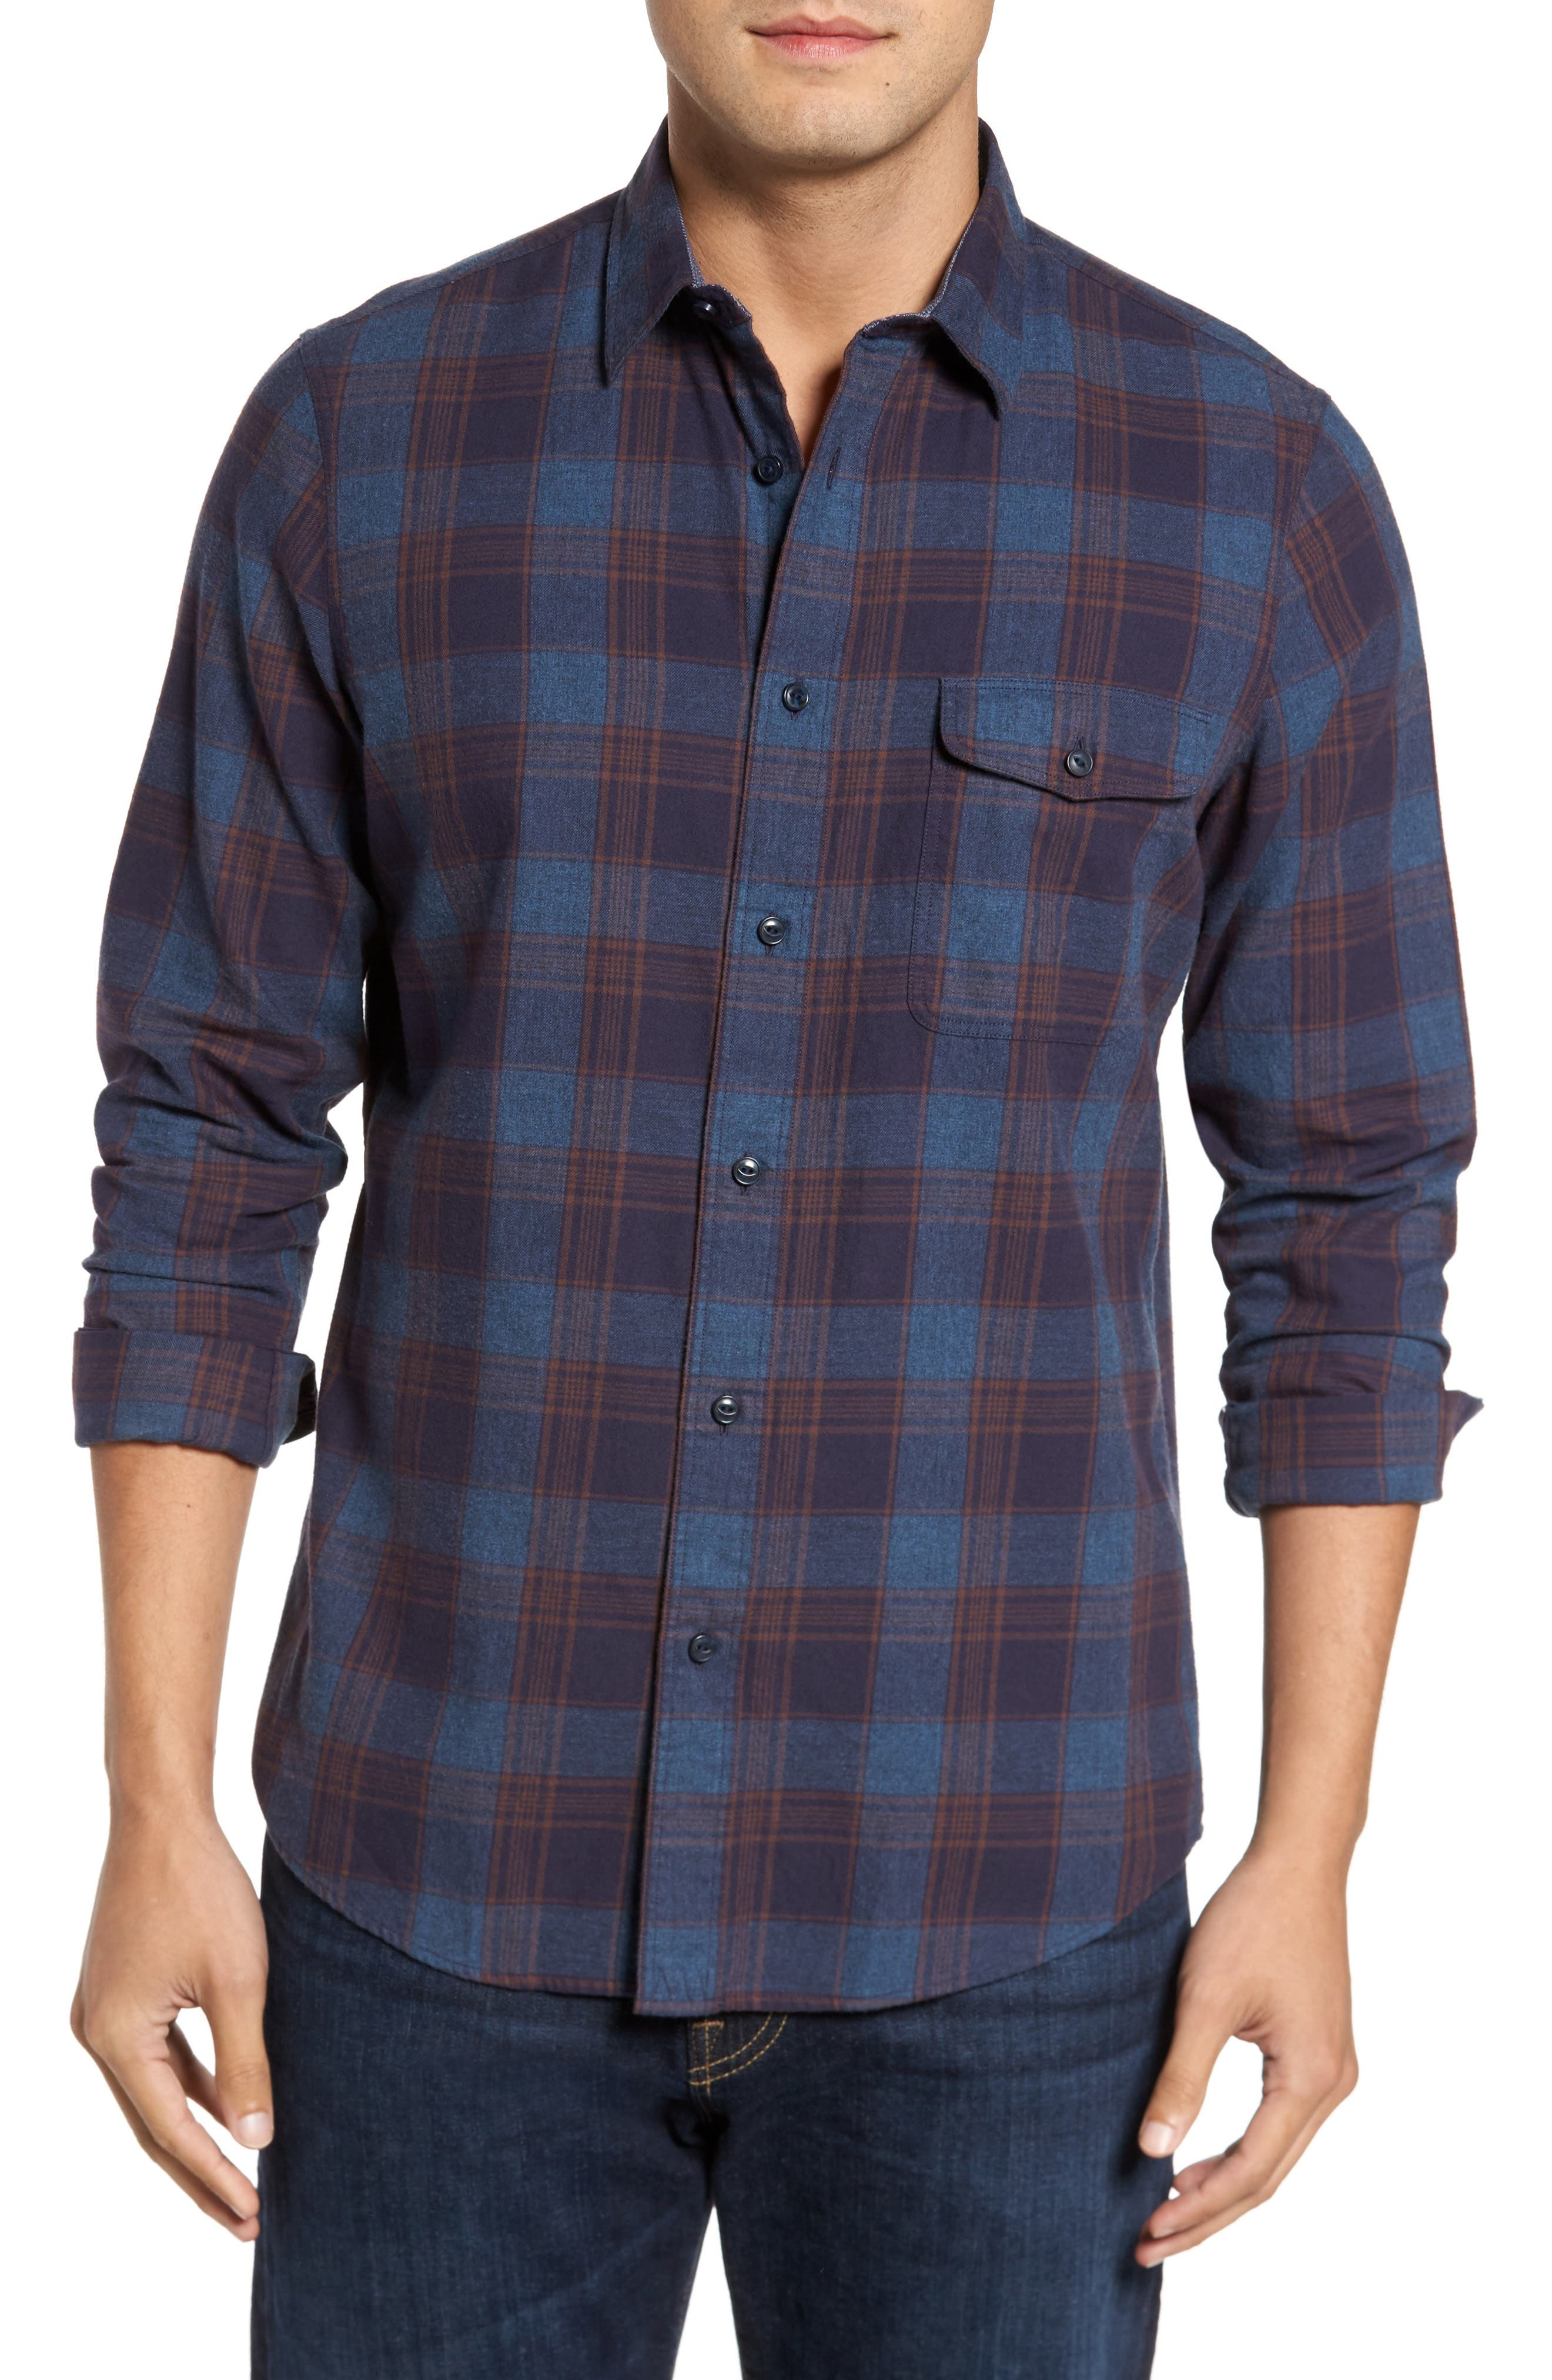 Regular Fit Lumber Check Flannel Shirt,                             Main thumbnail 1, color,                             Blue Canal Navy Plaid